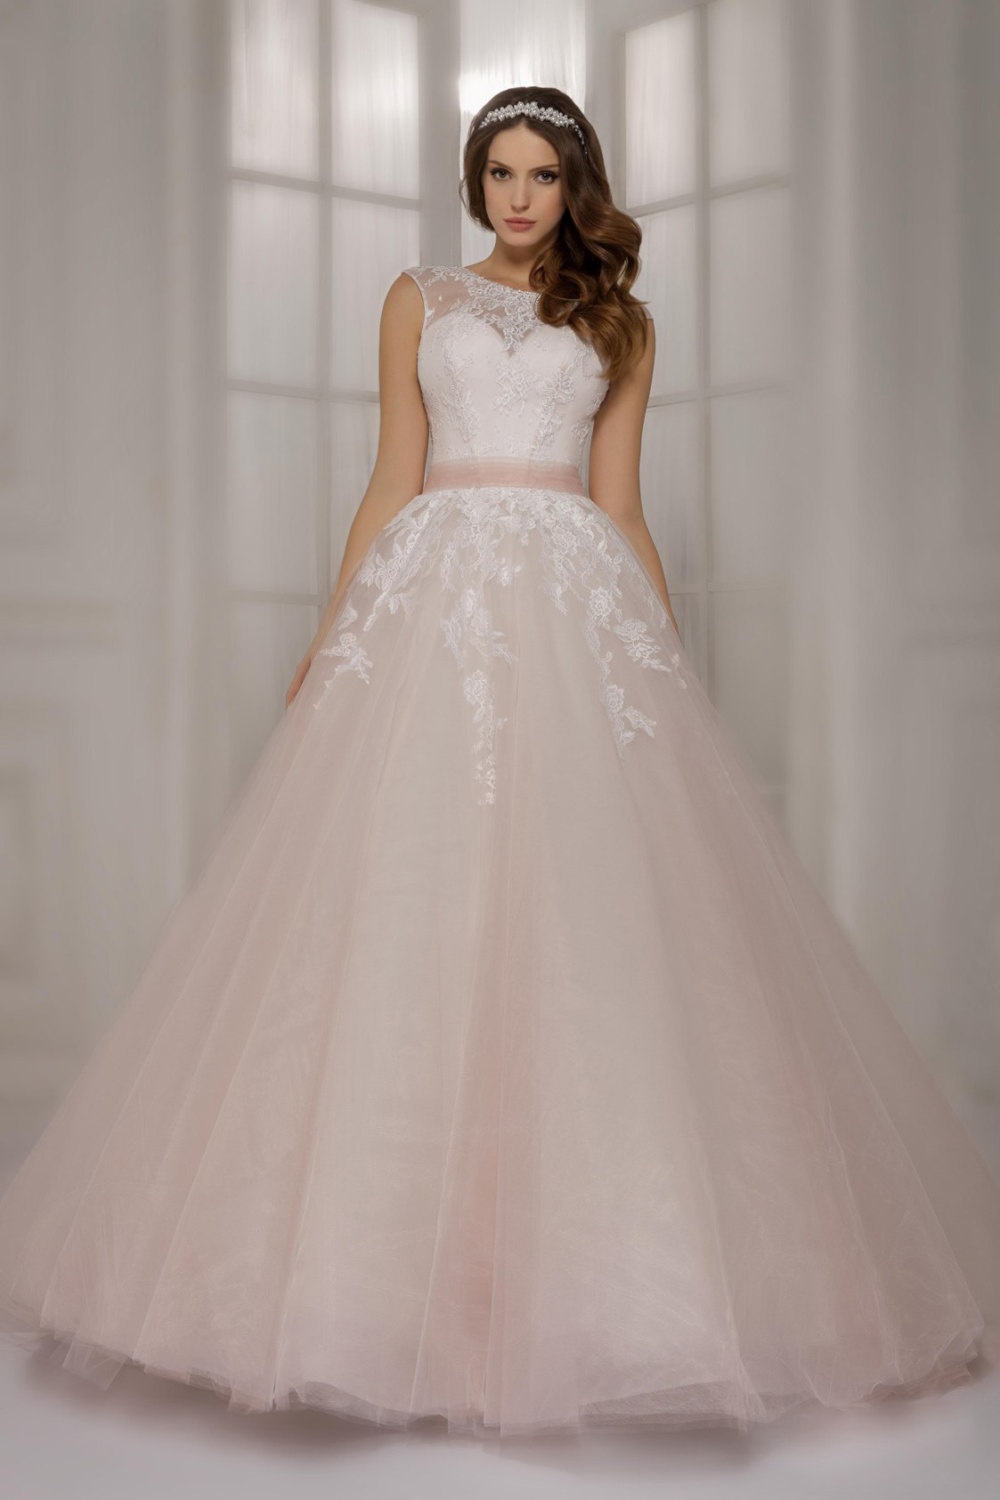 Newest light pink lace ball gowns Wedding Dresses with sashes Colored Appliqued bodice V back sleeveless - Pink Wedding Gowns